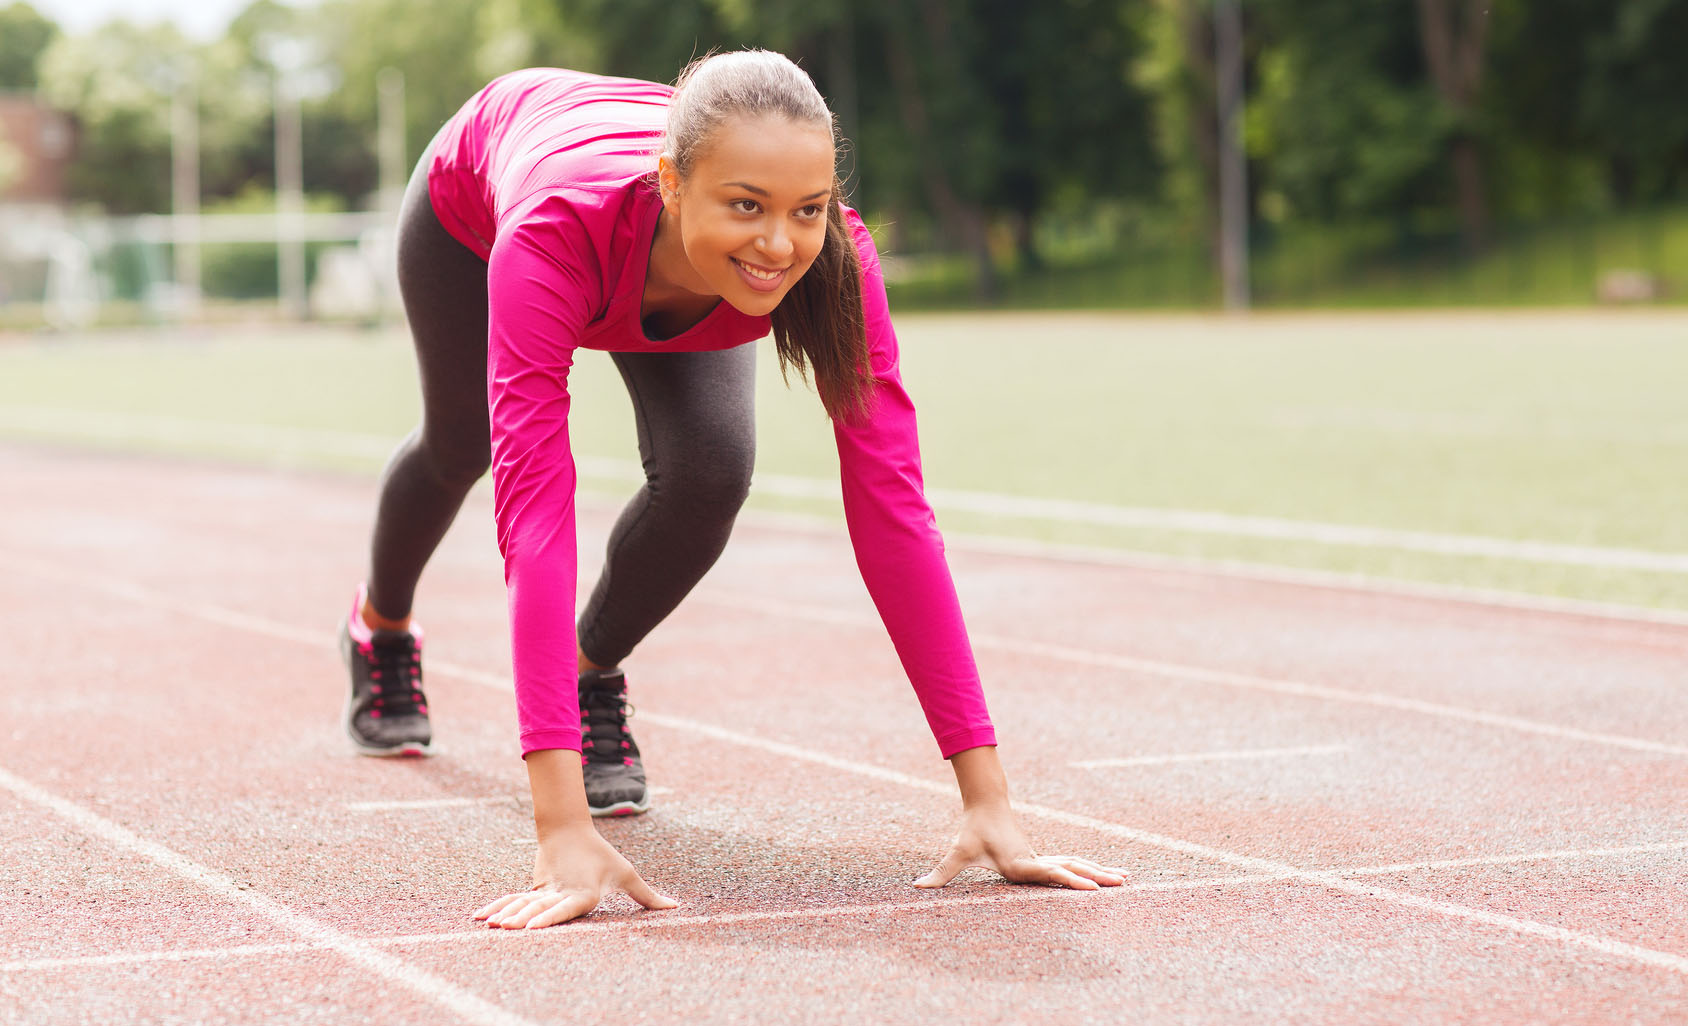 The Wonders of Warm-ups: 5 Reasons Why You Must Never Skip Warming Up When Working Out